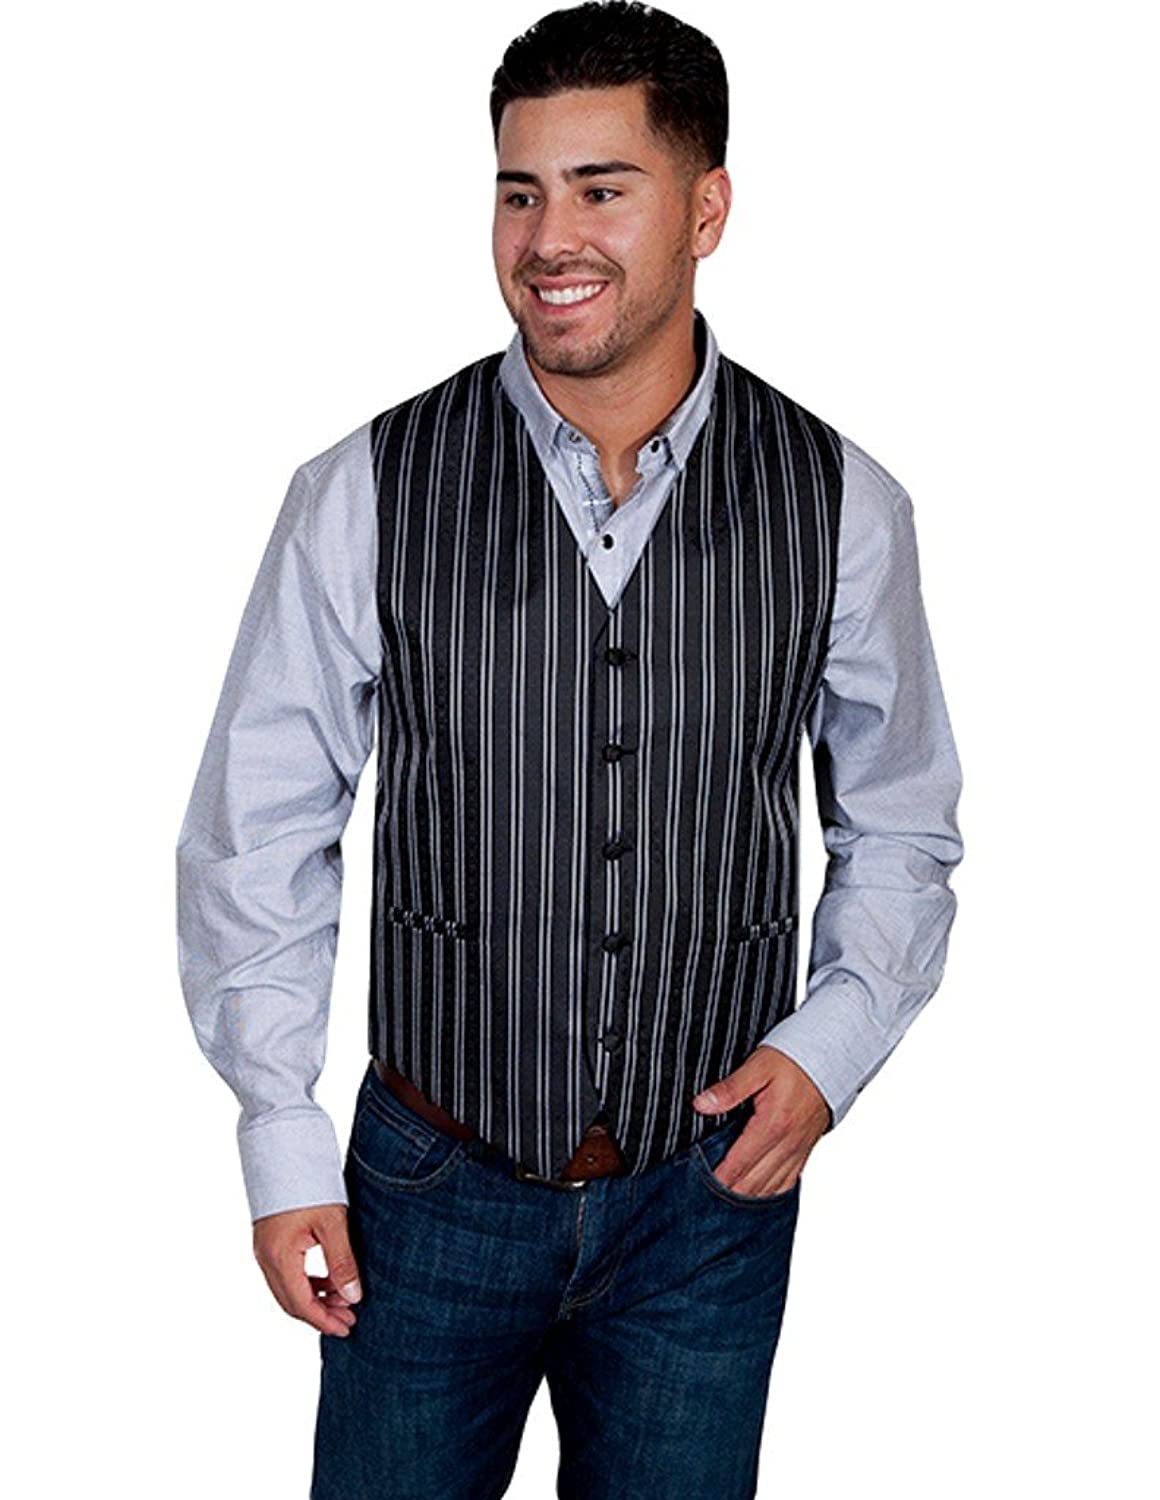 Men's Vintage Inspired Vests Scully RW169N Mens Sophisticated Double Pinstripe Western Vest $55.05 AT vintagedancer.com